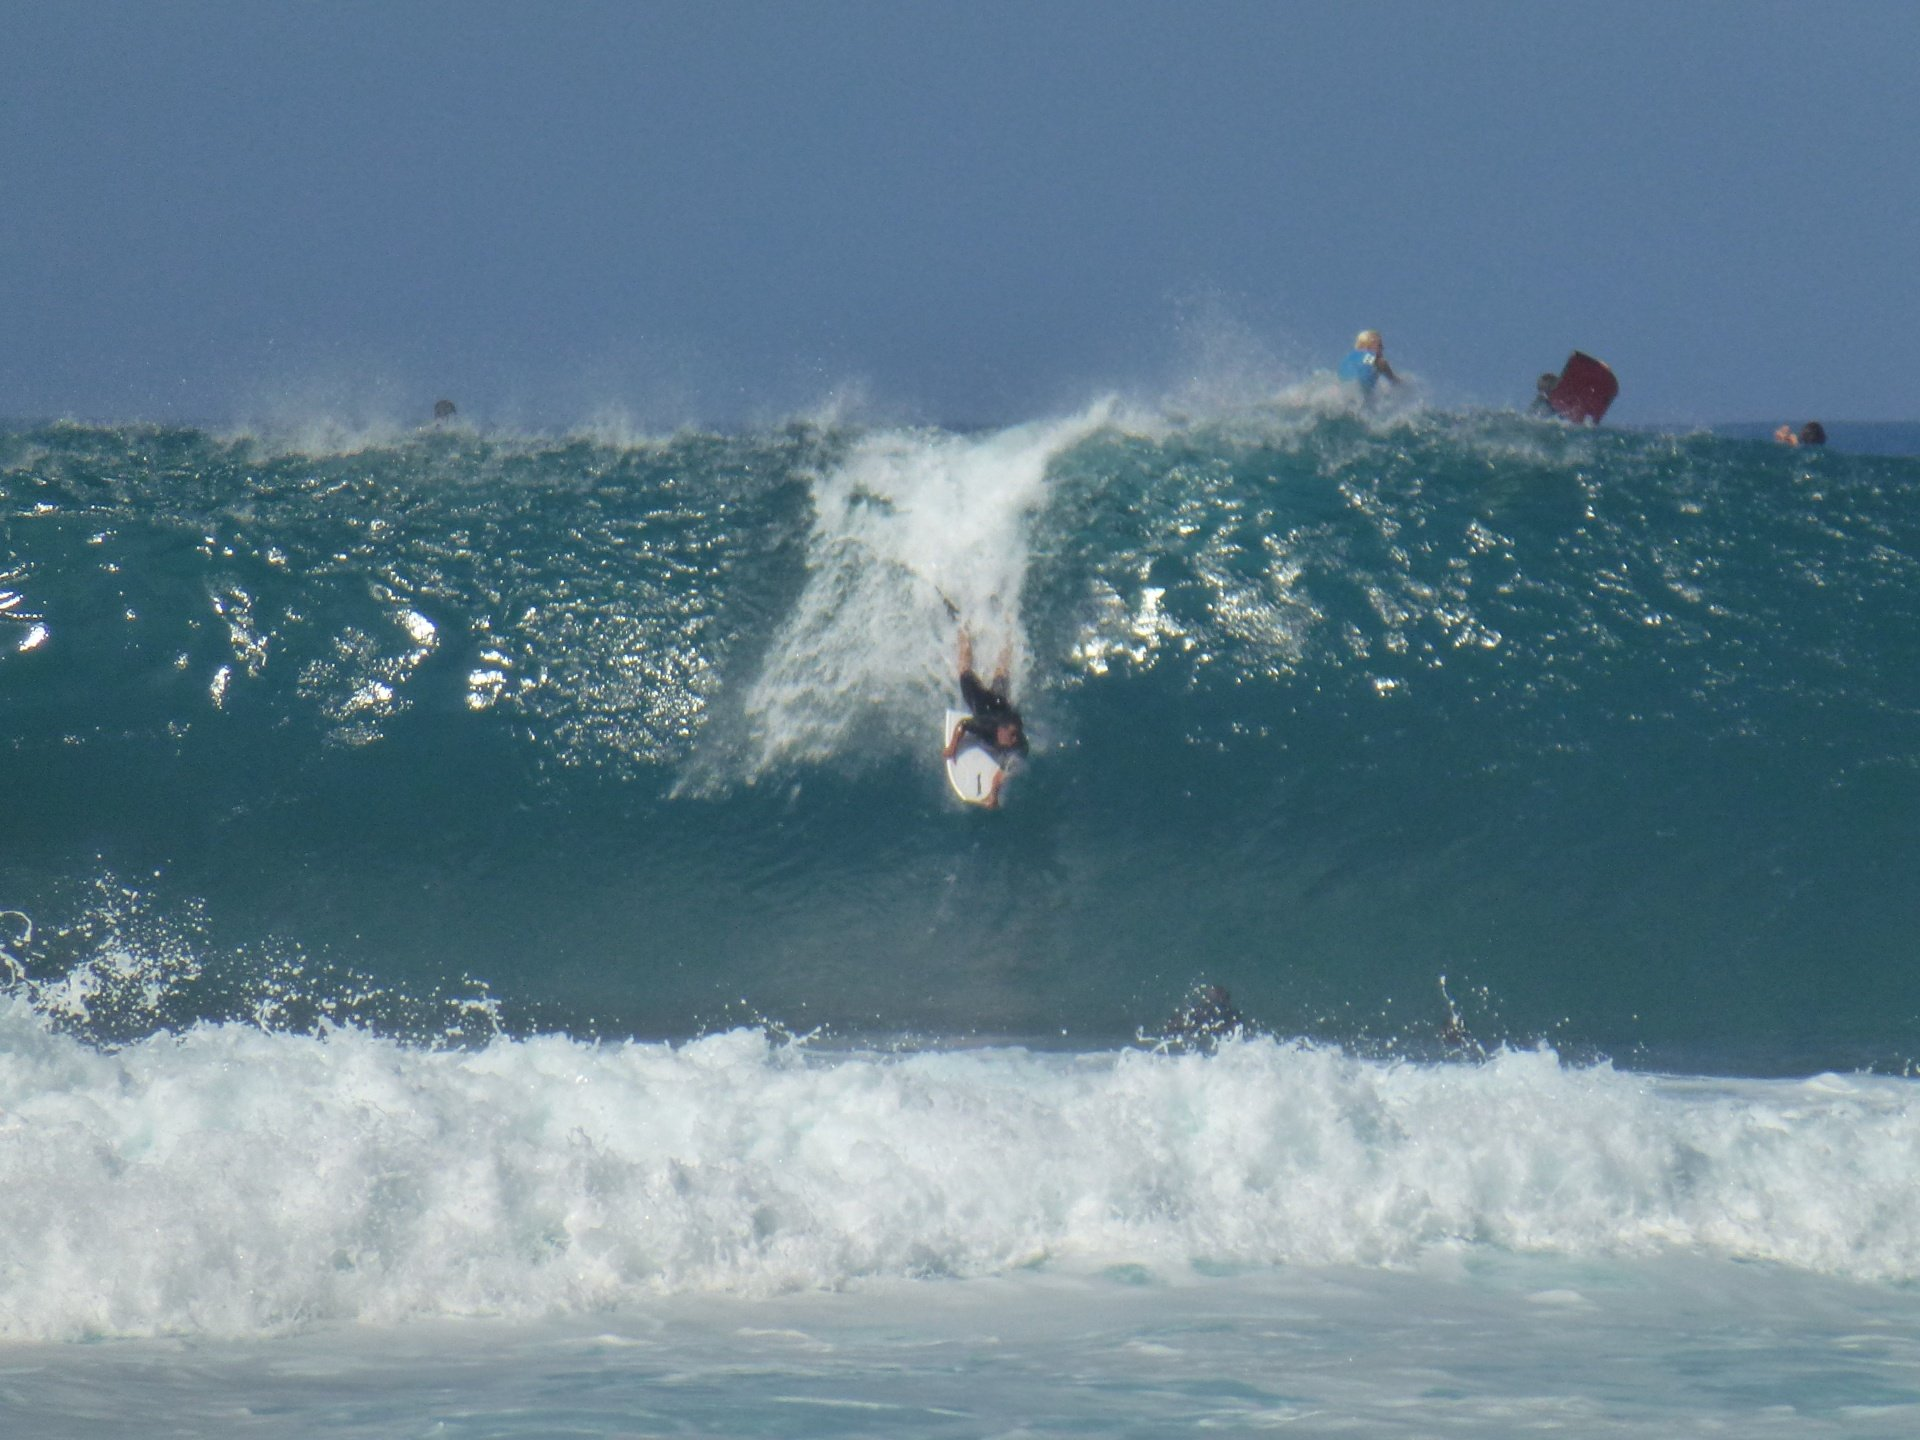 stromybarrels's photo of Pipeline & Backdoor